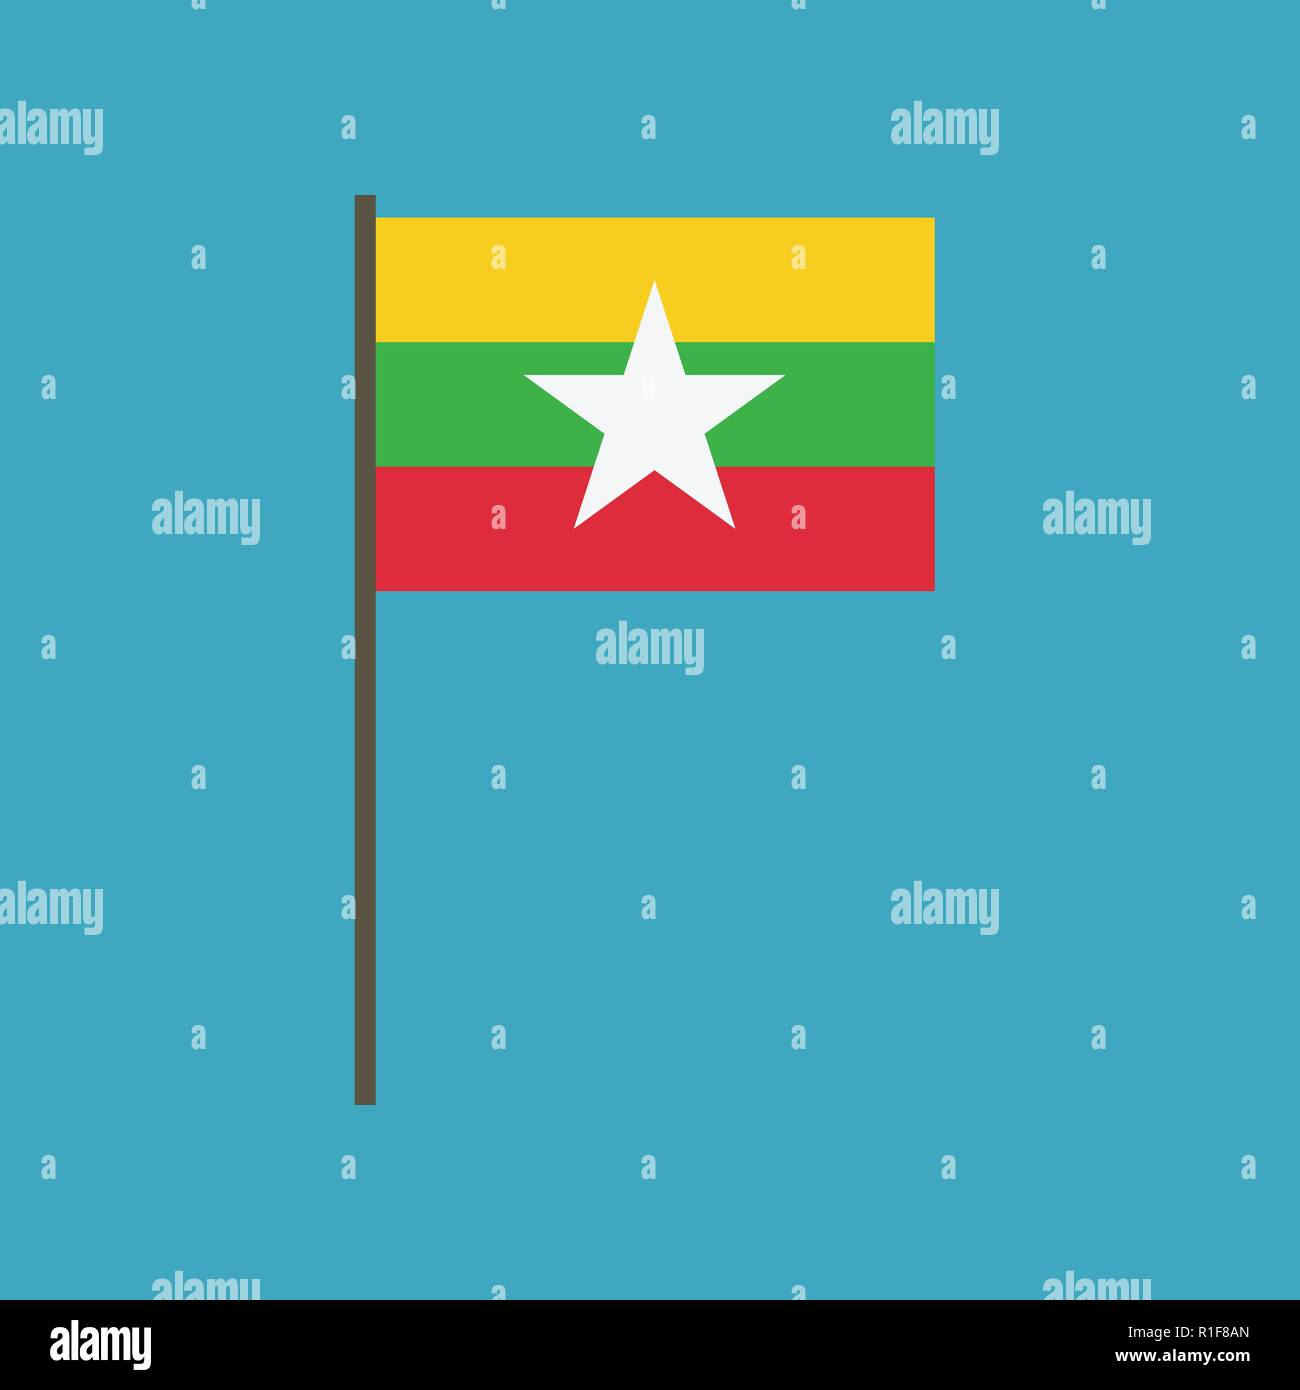 Myanmar flag icon in flat design. Independence day or National day holiday concept. - Stock Vector